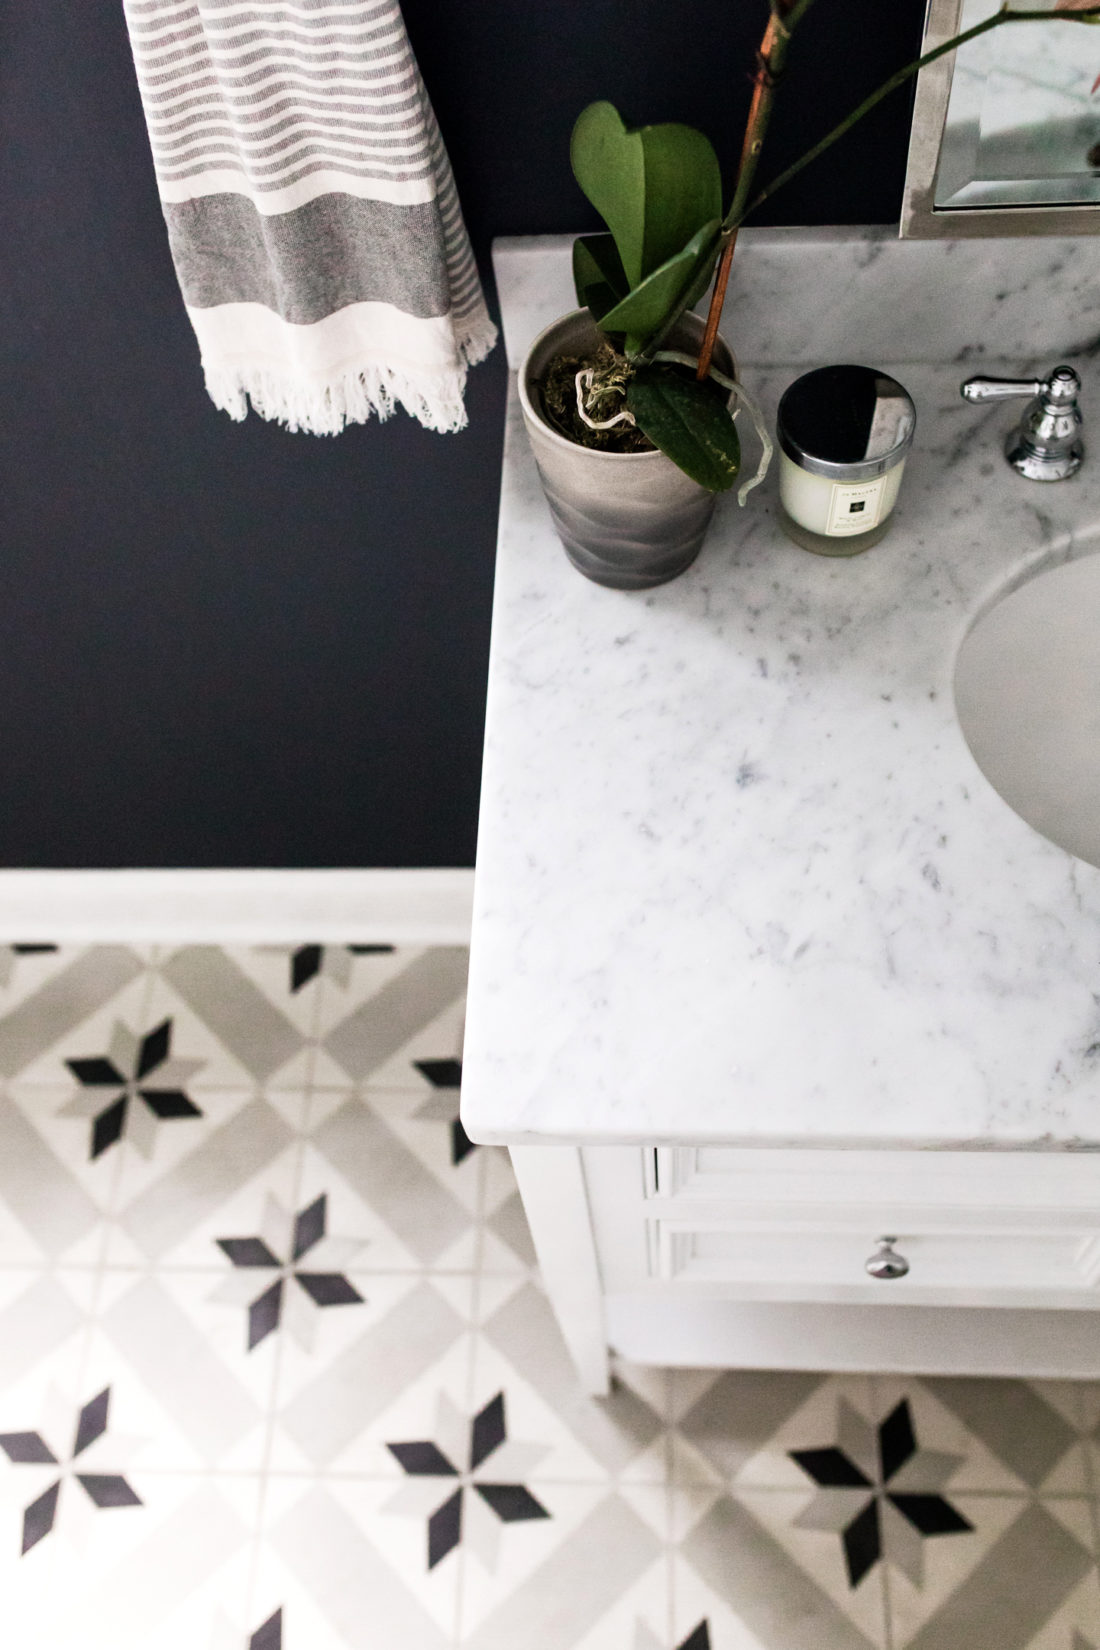 Eva Amurri Martino shares the full redesign of her black, white, and grey concept powder room in her Connecticut home